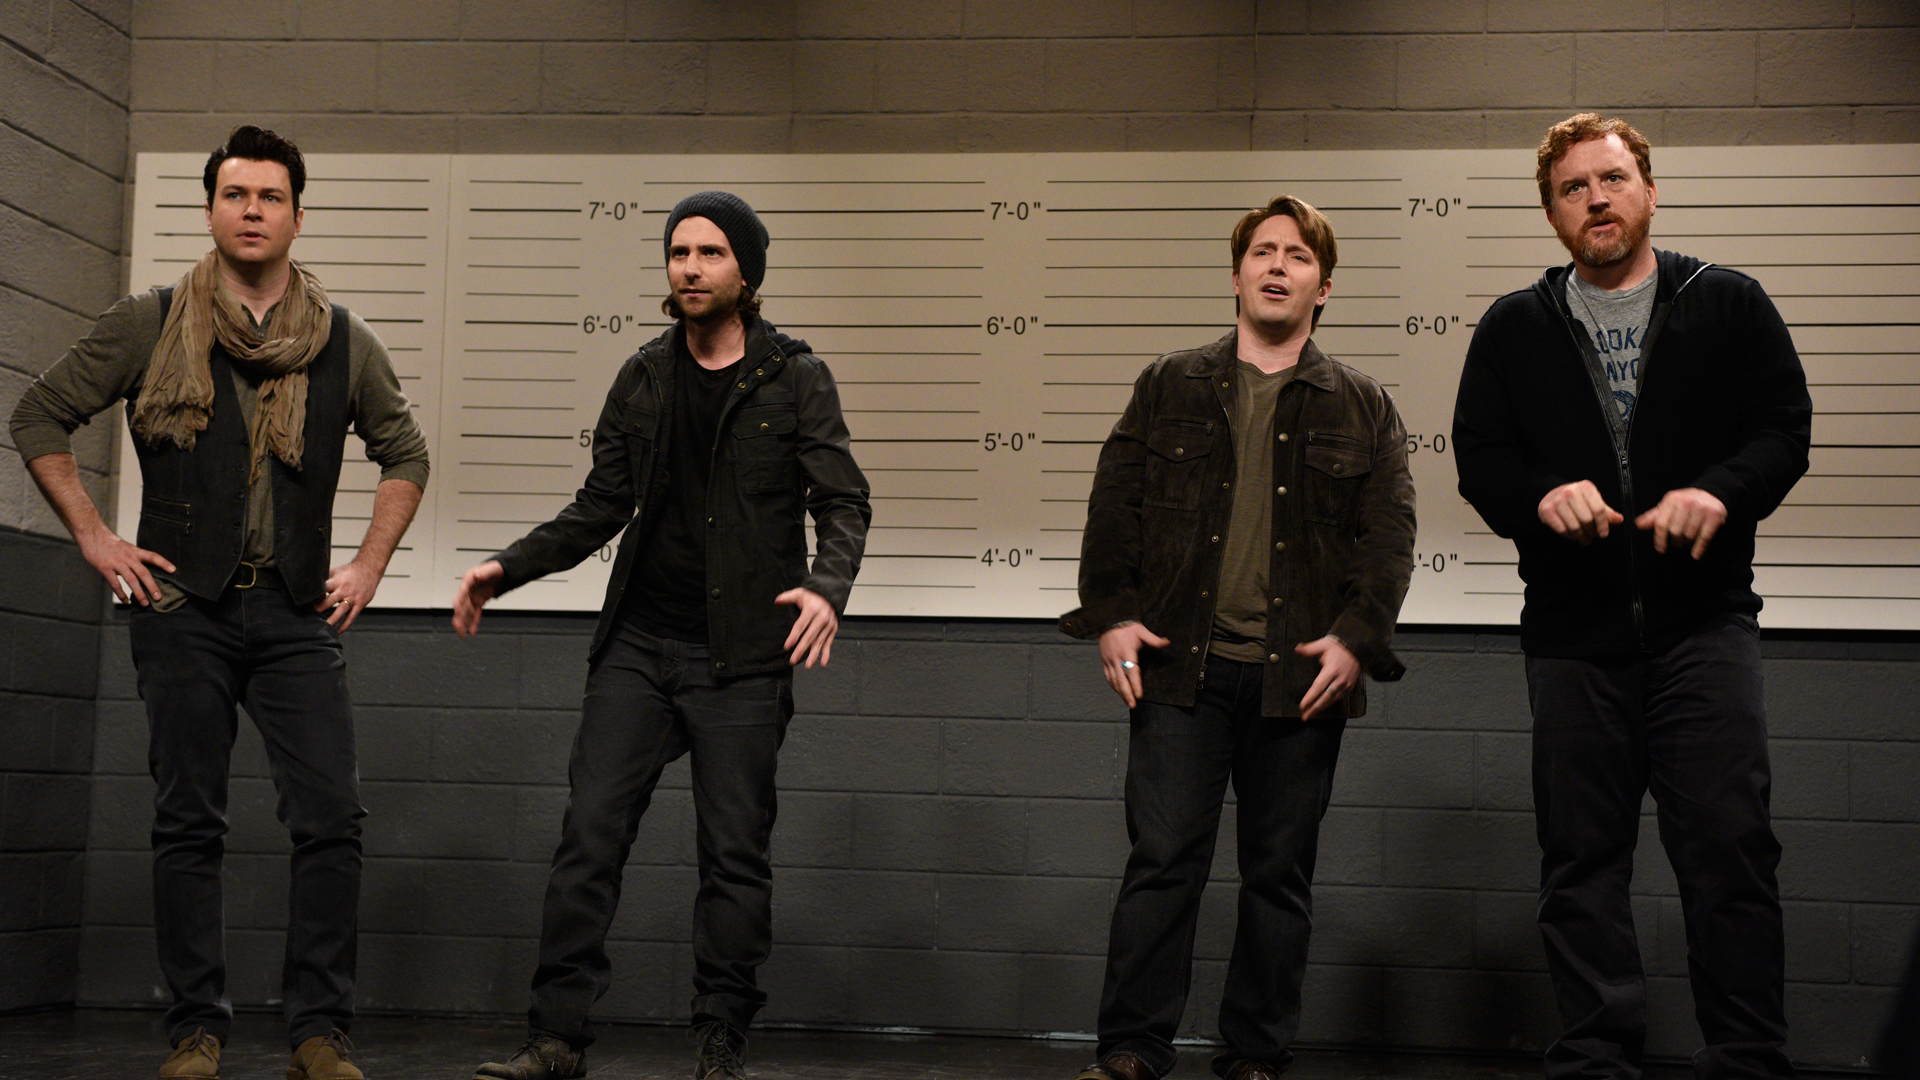 watch police lineup from saturday night live nbccom